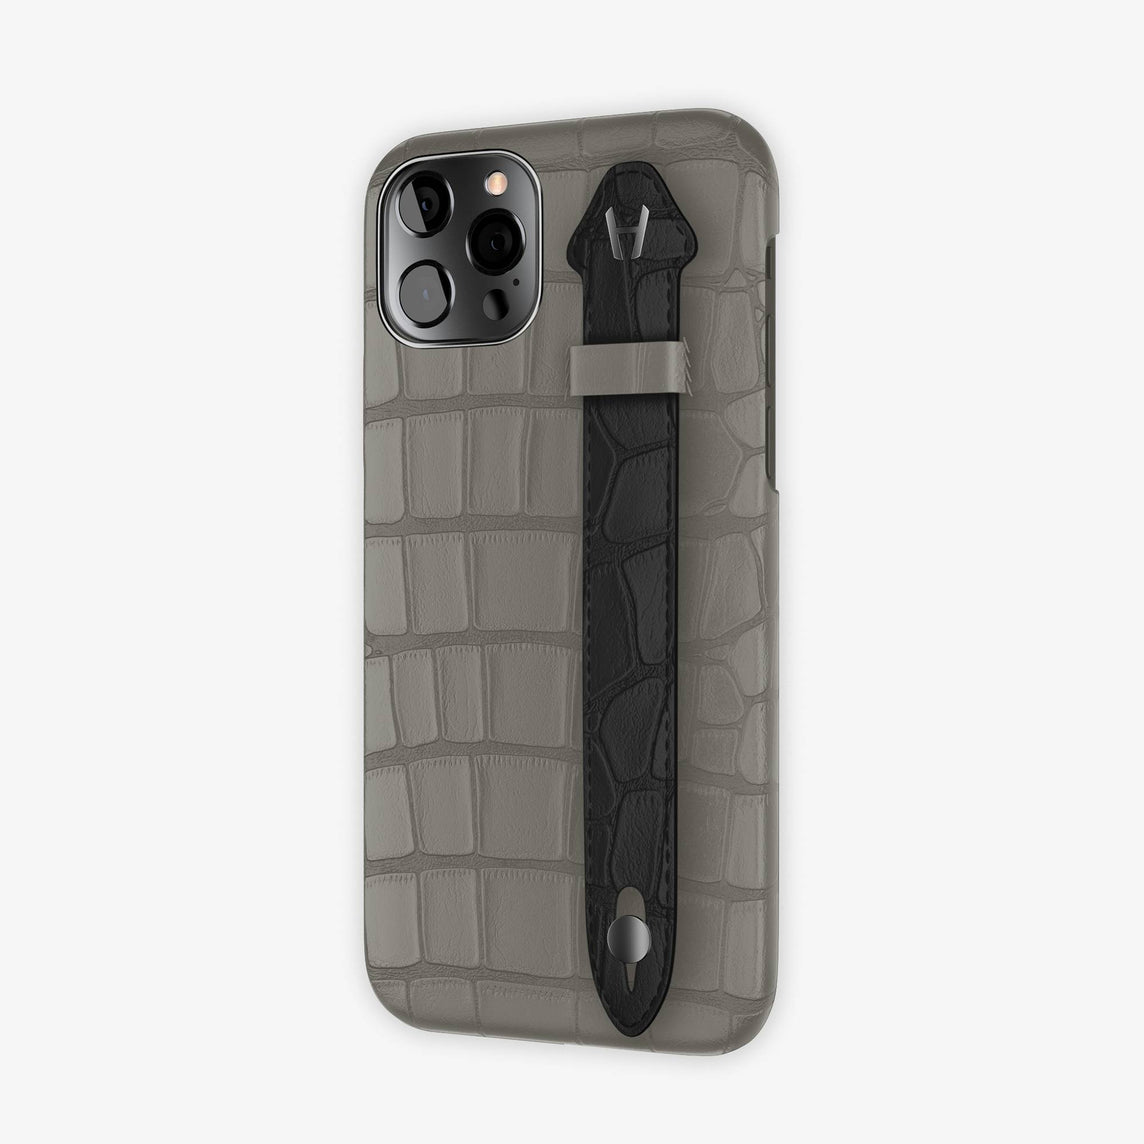 Alligator Side Finger Case iPhone 12 & iPhone 12 Pro | Grey Pearl/Black -Black